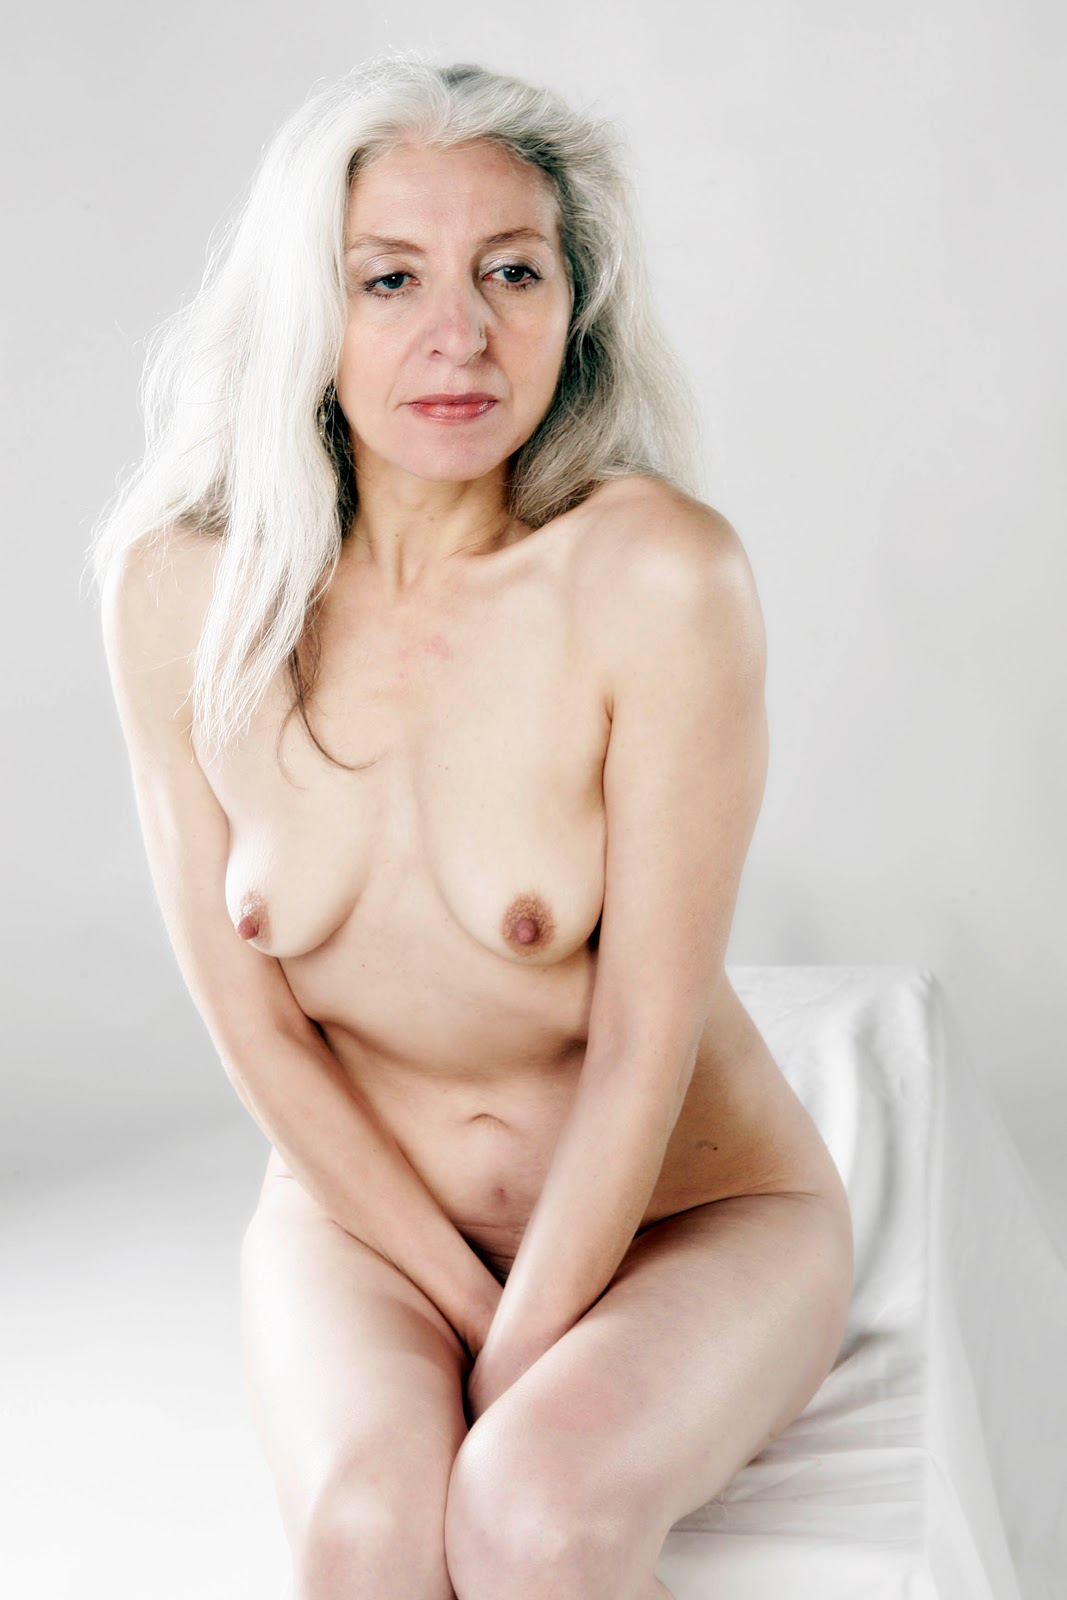 Totally nude miley cyrus